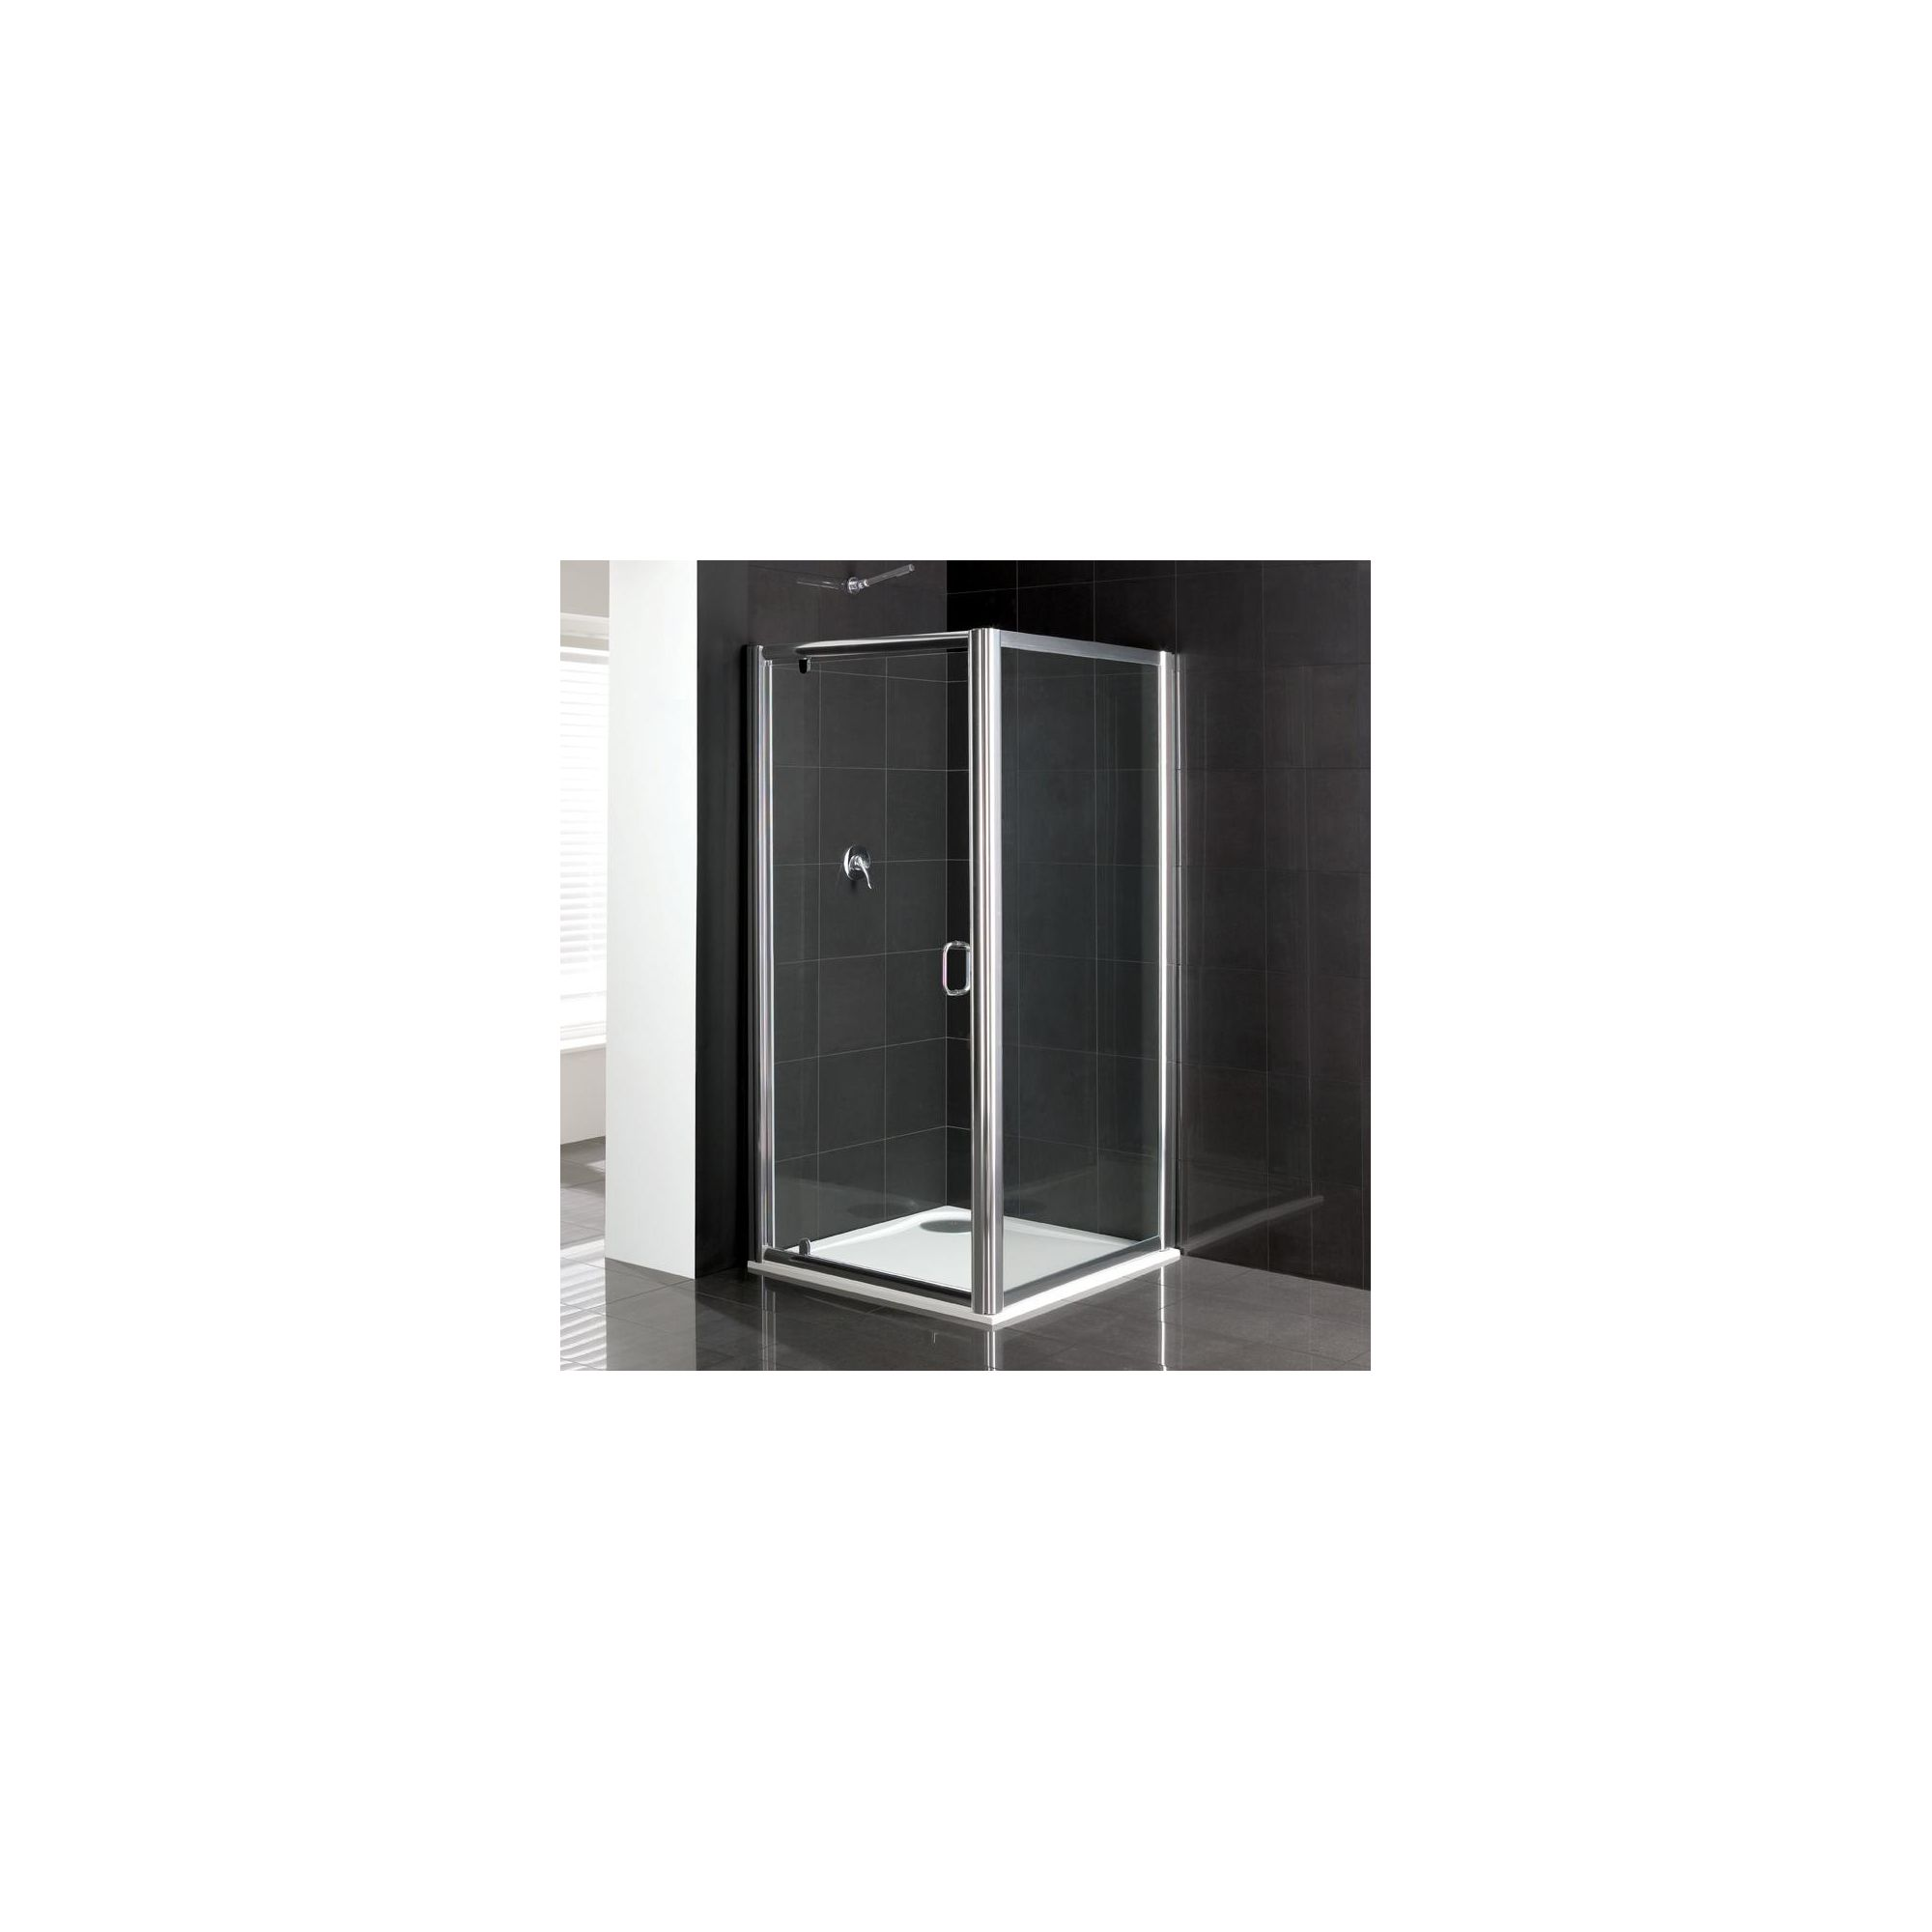 Duchy Elite Silver Pivot Door Shower Enclosure with Towel Rail, 700mm x 700mm, Standard Tray, 6mm Glass at Tesco Direct